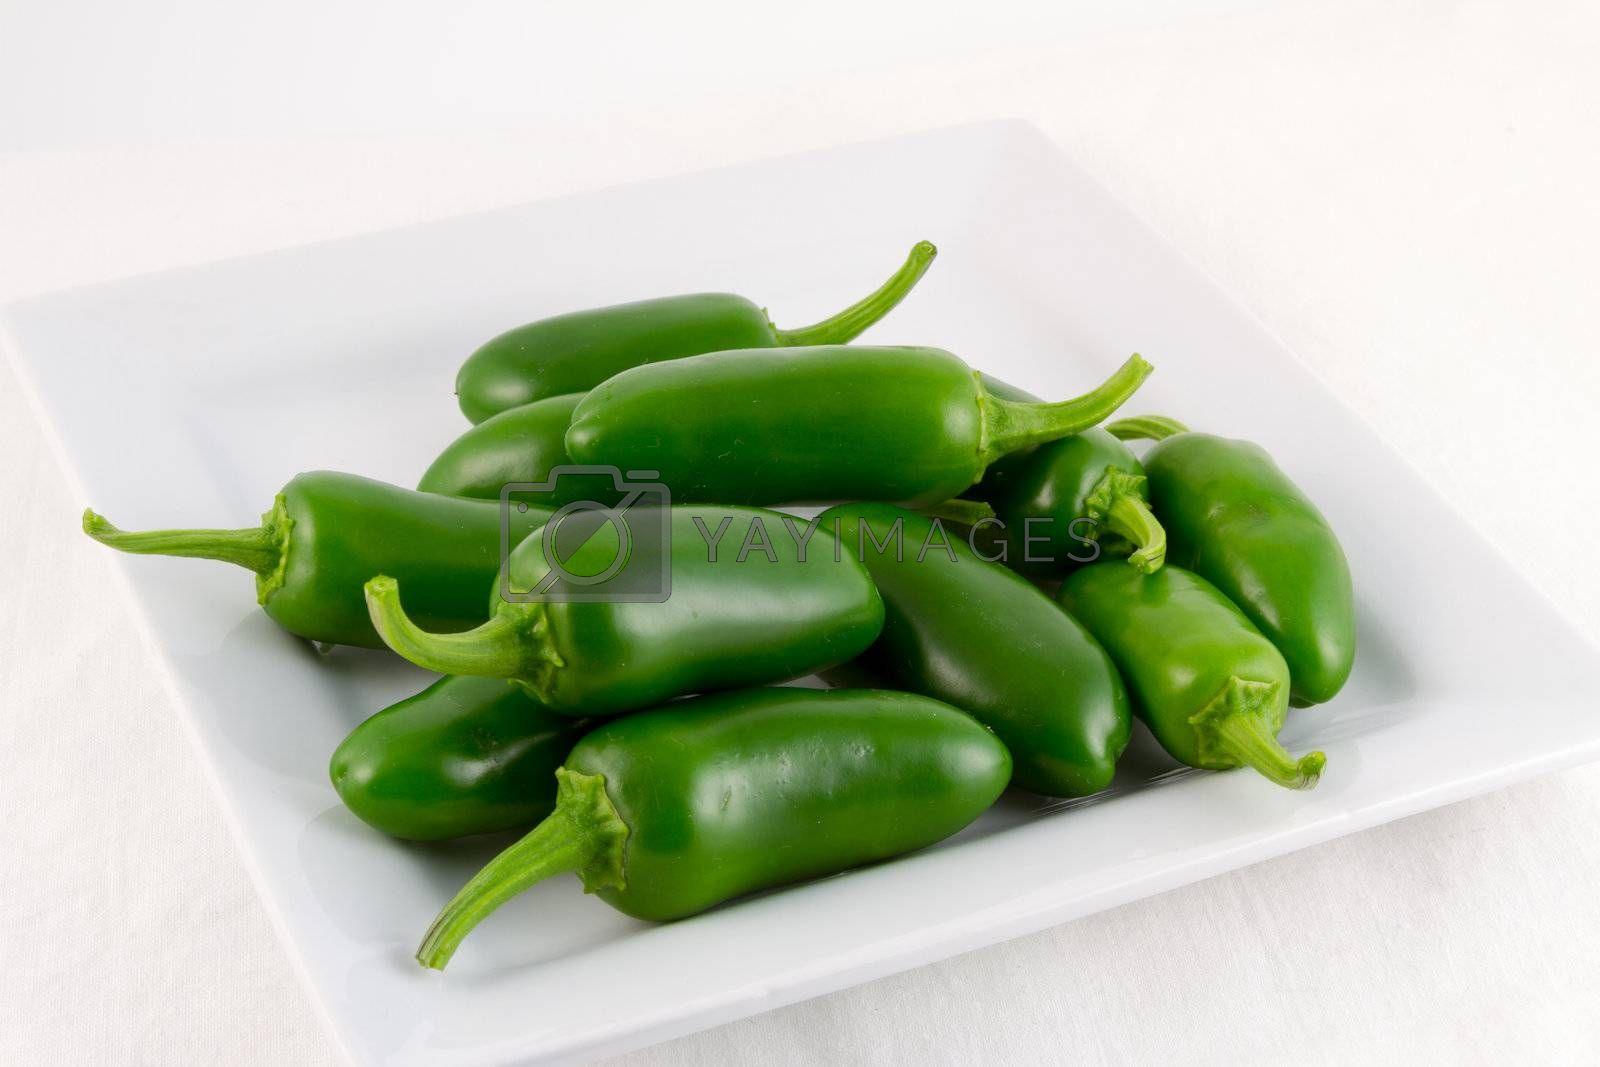 A group of freshly picked green Padron chilis on a square white plate with white background